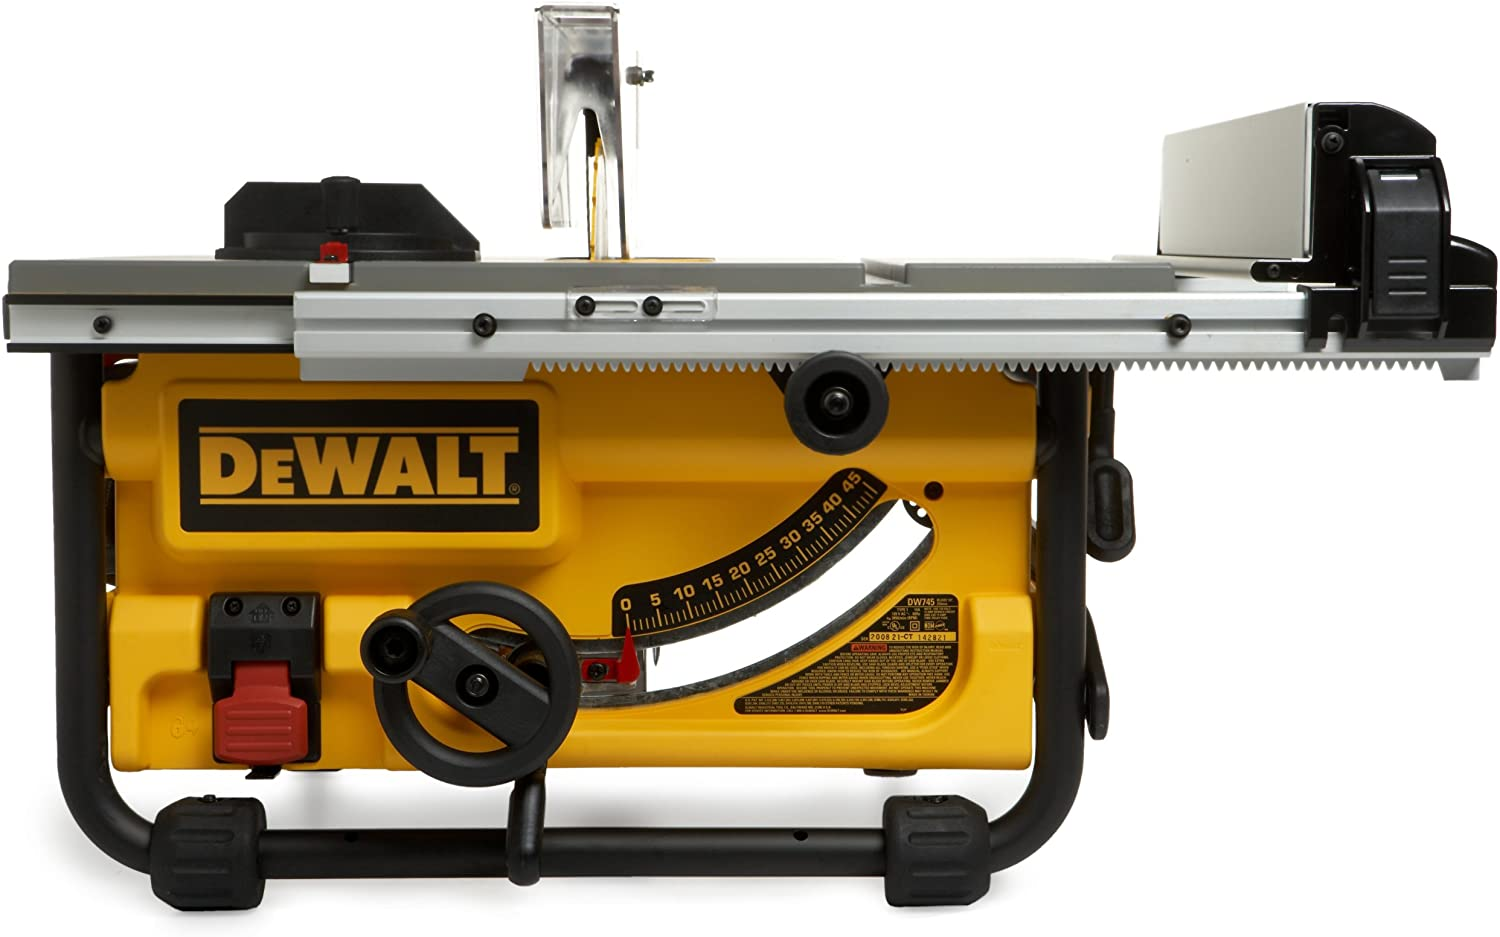 DEWALT DW745 featured image 6